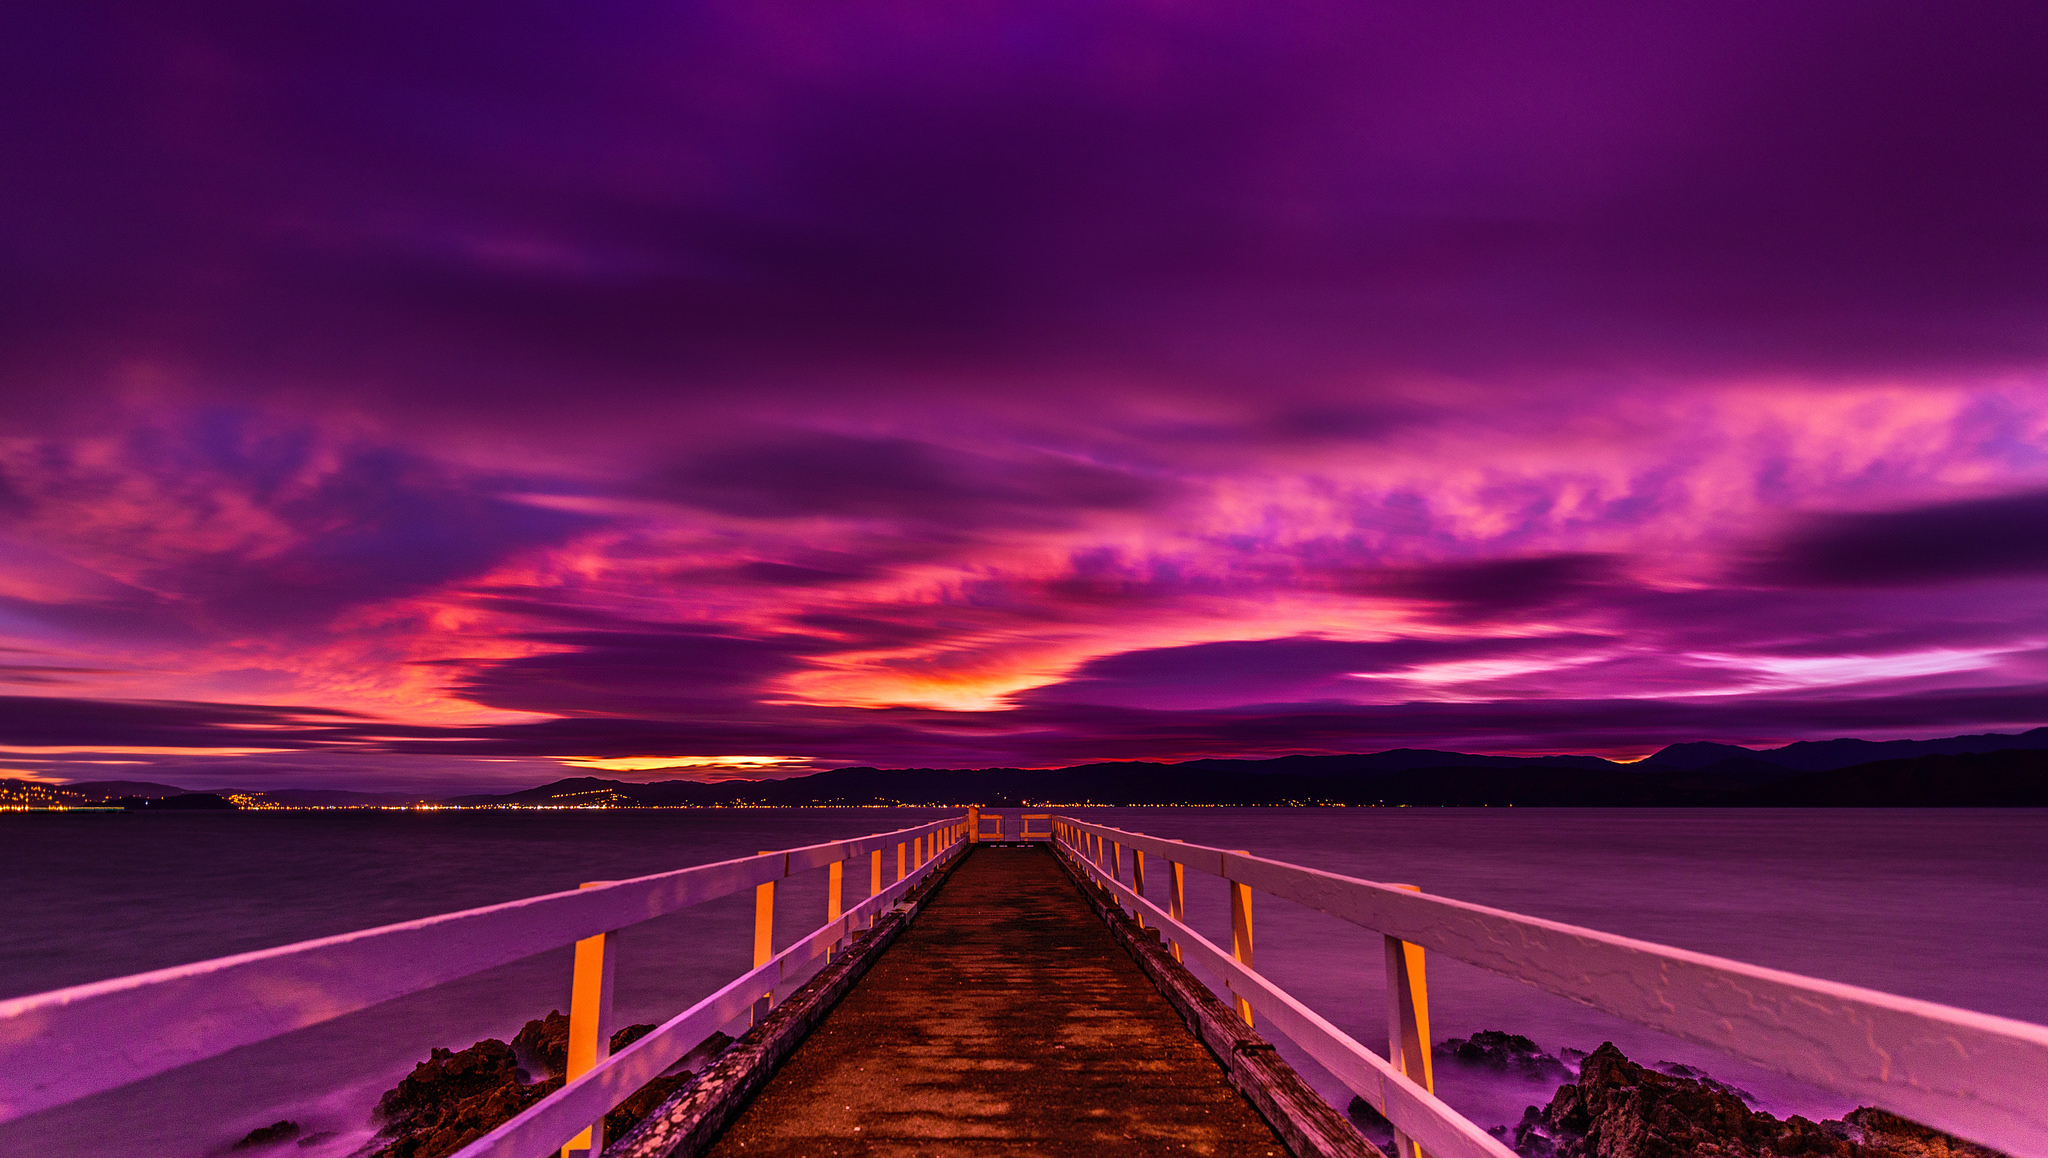 Purple Sunset over Pier Computer Wallpapers Desktop 2048x1158